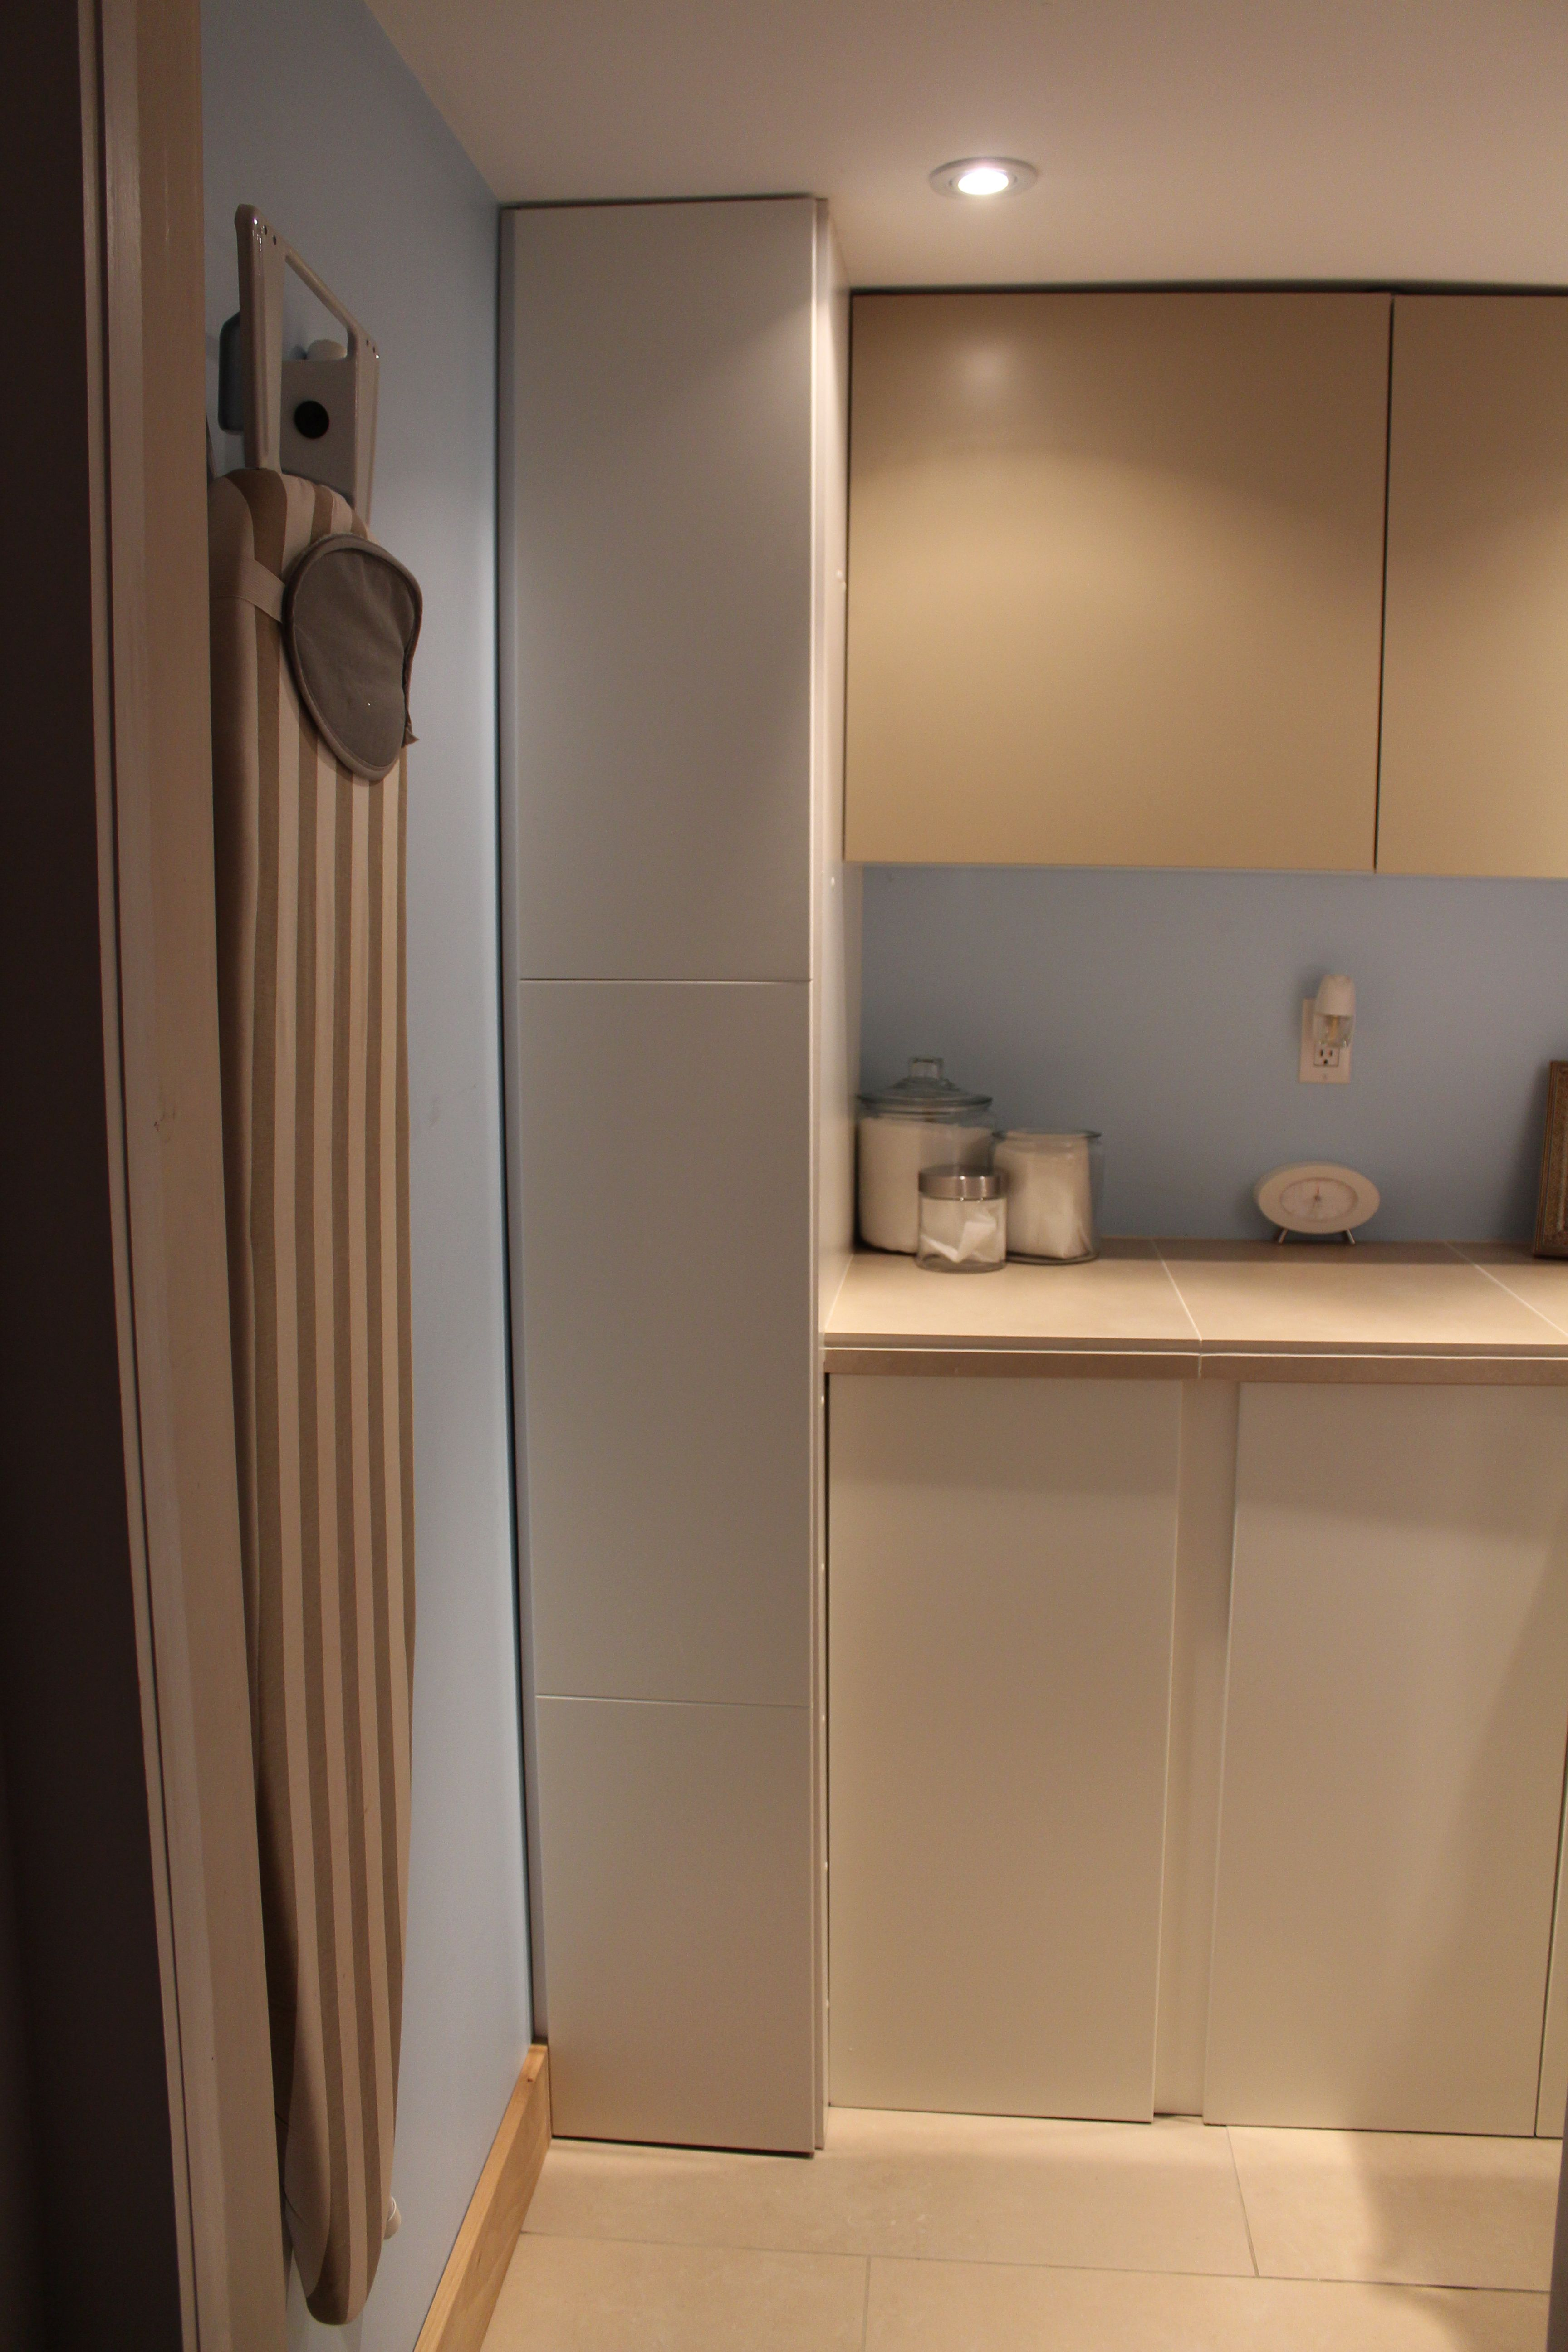 basement cabinets ideas. Basement Laundry Room Cabinet Design To Hide Toilet Pipe Cabinets Ideas